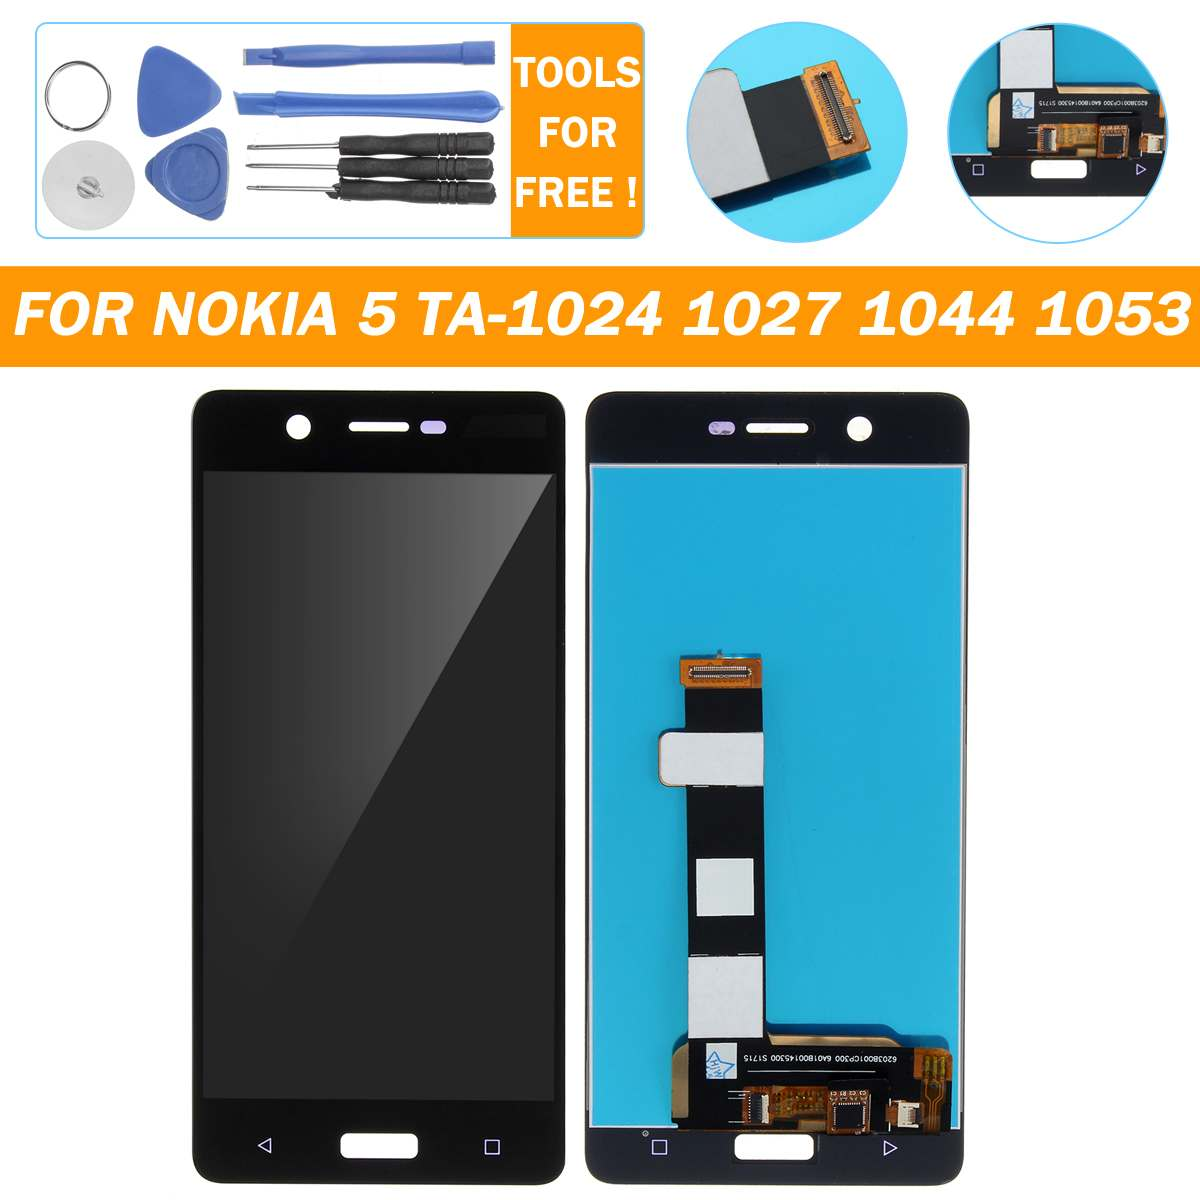 LEORY LCD Display+Touch Screen Digitizer Assembly Screen Replacement For Nokia 5 <font><b>TA</b></font>-1024 1027 1044 <font><b>1053</b></font> Mobile Phone Fix Tools image